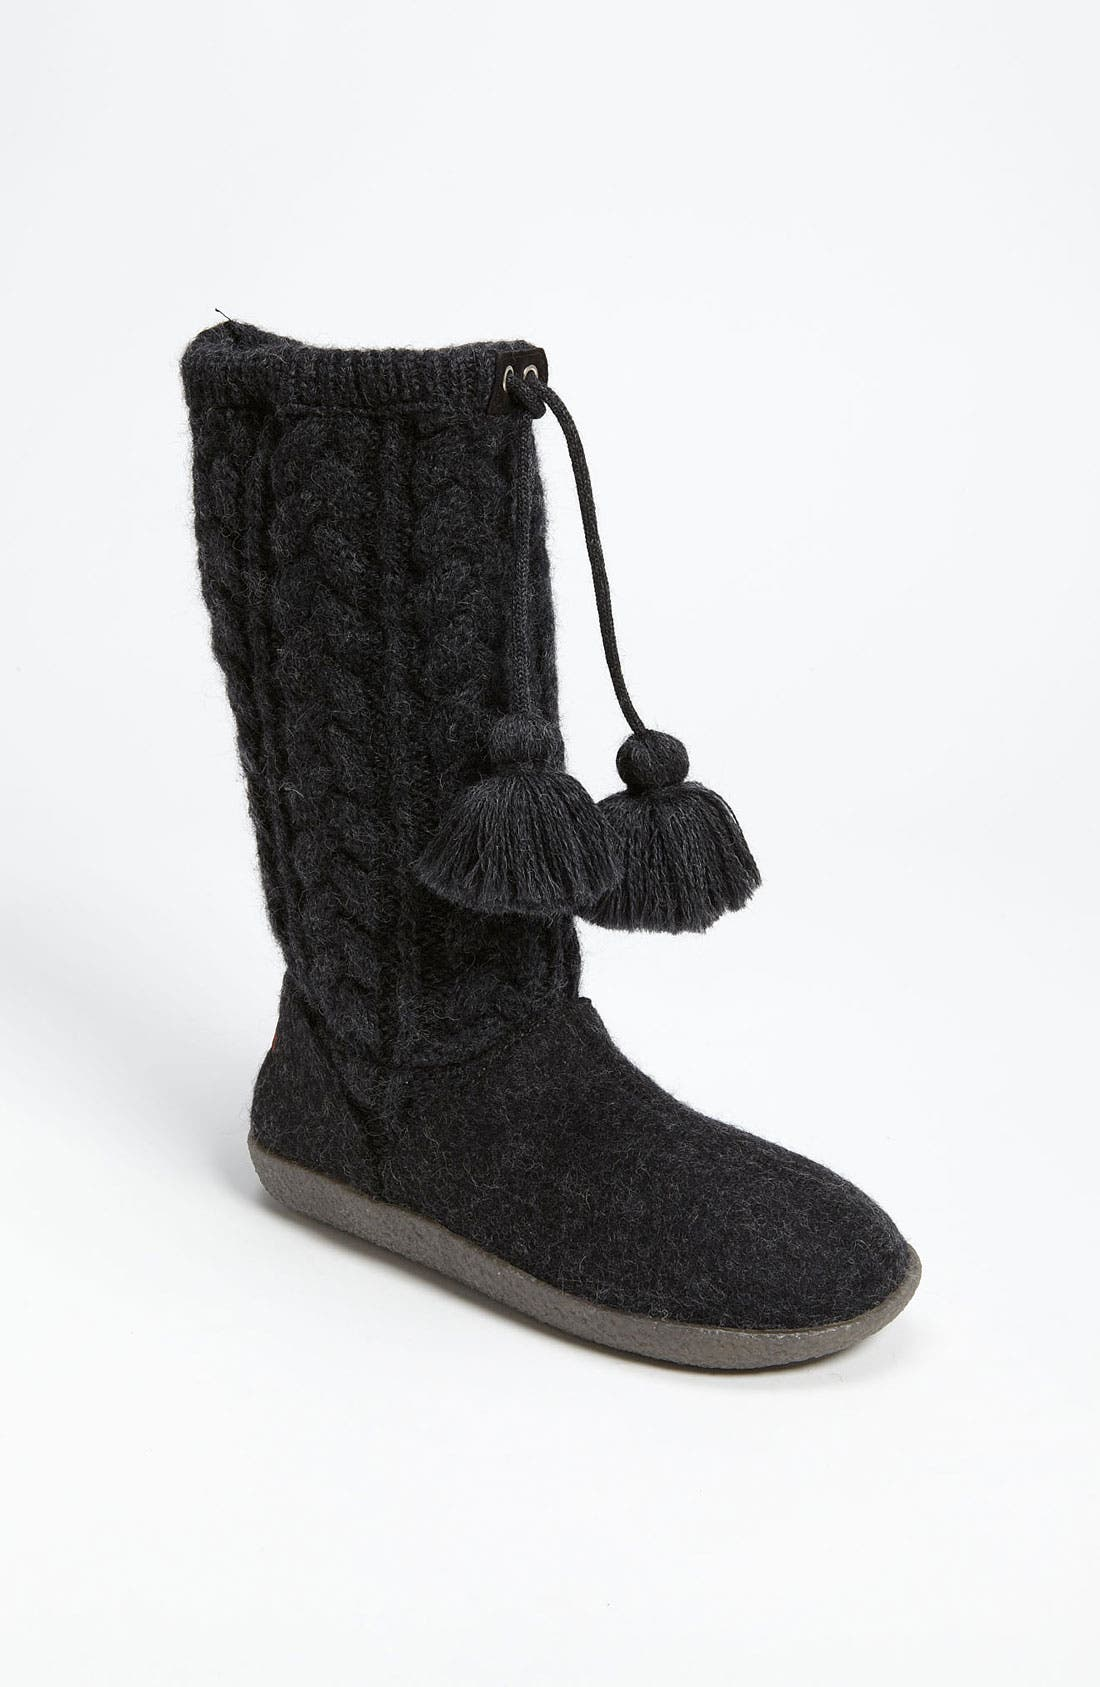 Alternate Image 1 Selected - Giesswein 'Bruck Lodge Boot' Slipper